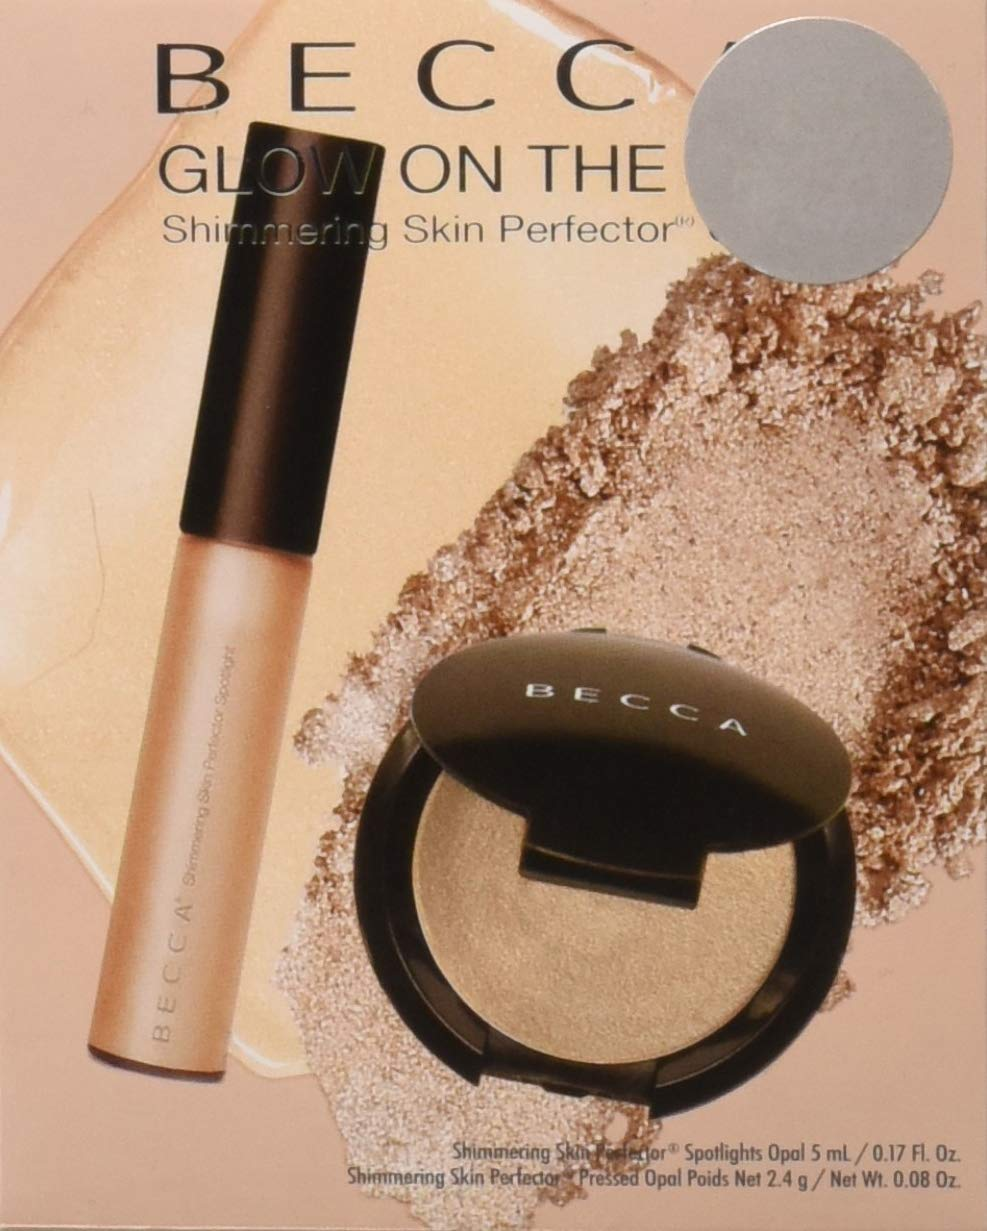 Becca 2 Piece Opal Glow On The Go Shimmering Skin Perfector Set, 1.2 Ounce by Becca (Image #1)